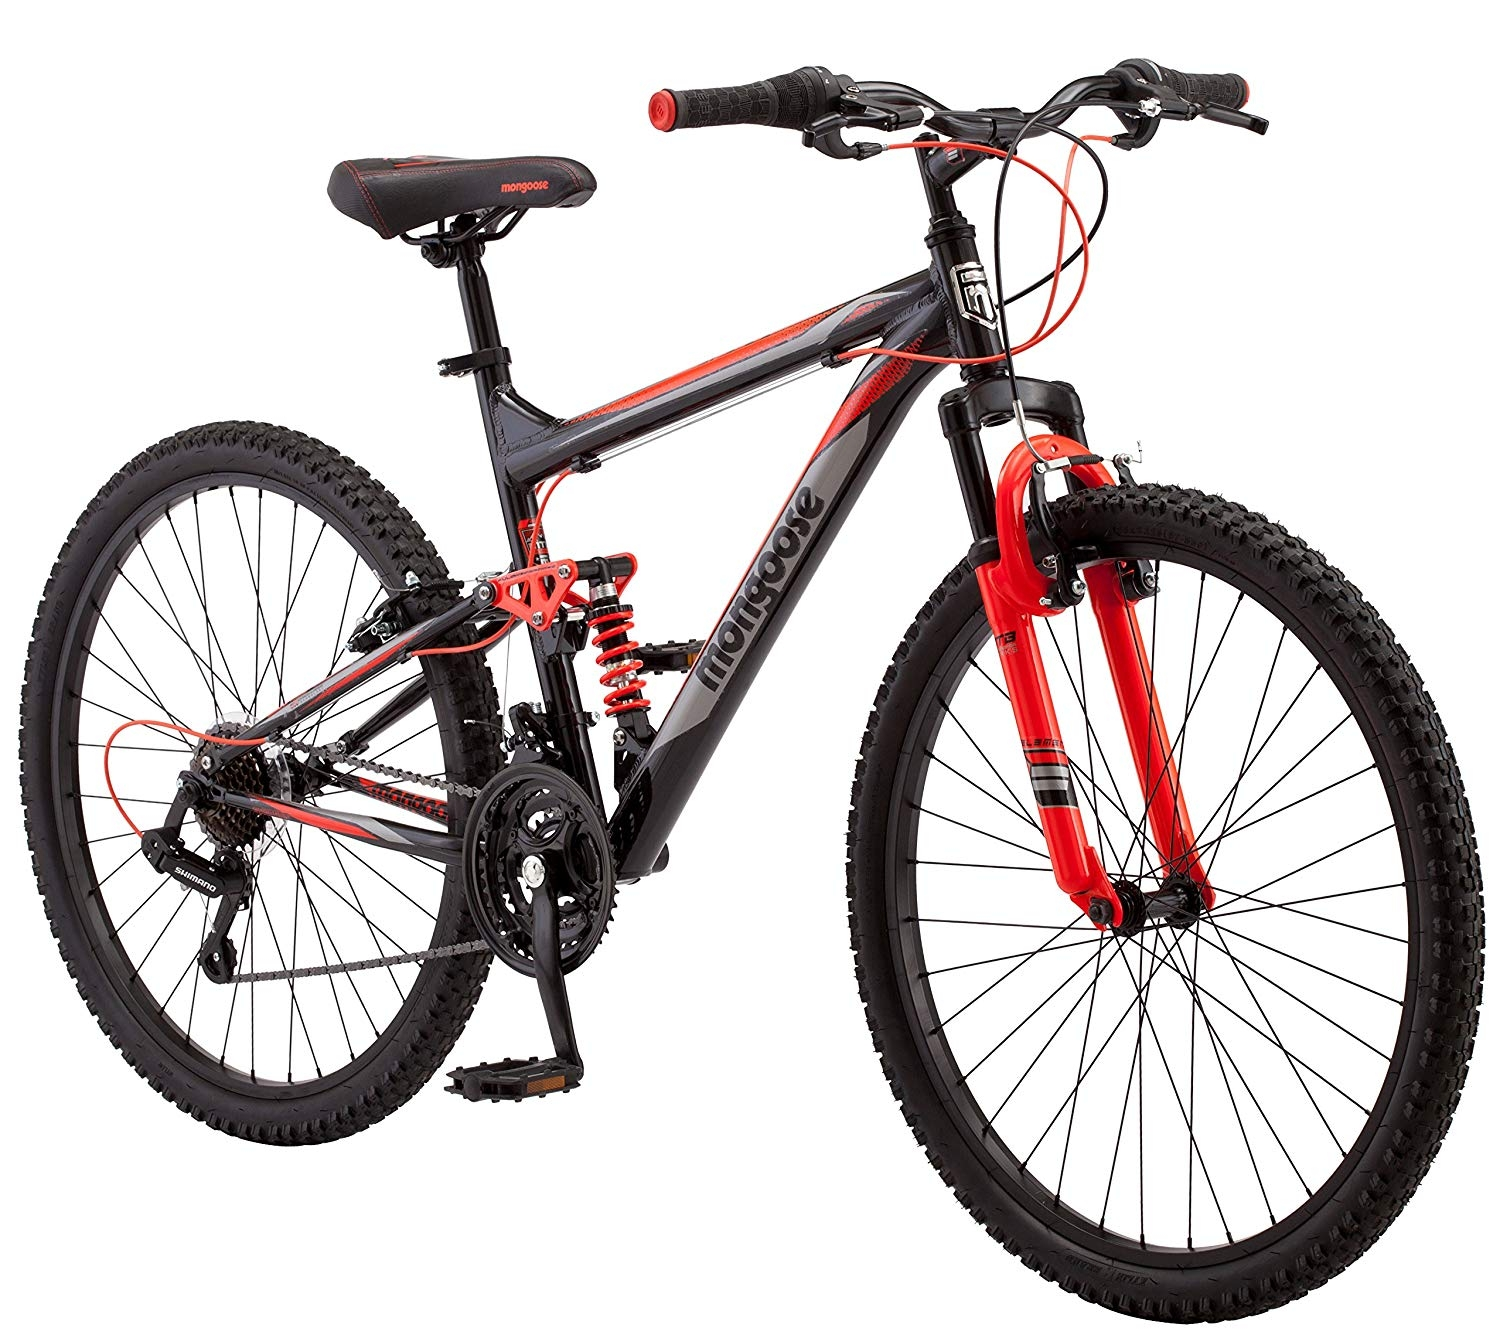 Mongoose Mountain Bike Status 2.2 for Men 26″ Affordable | Free Shipping | Review 2018